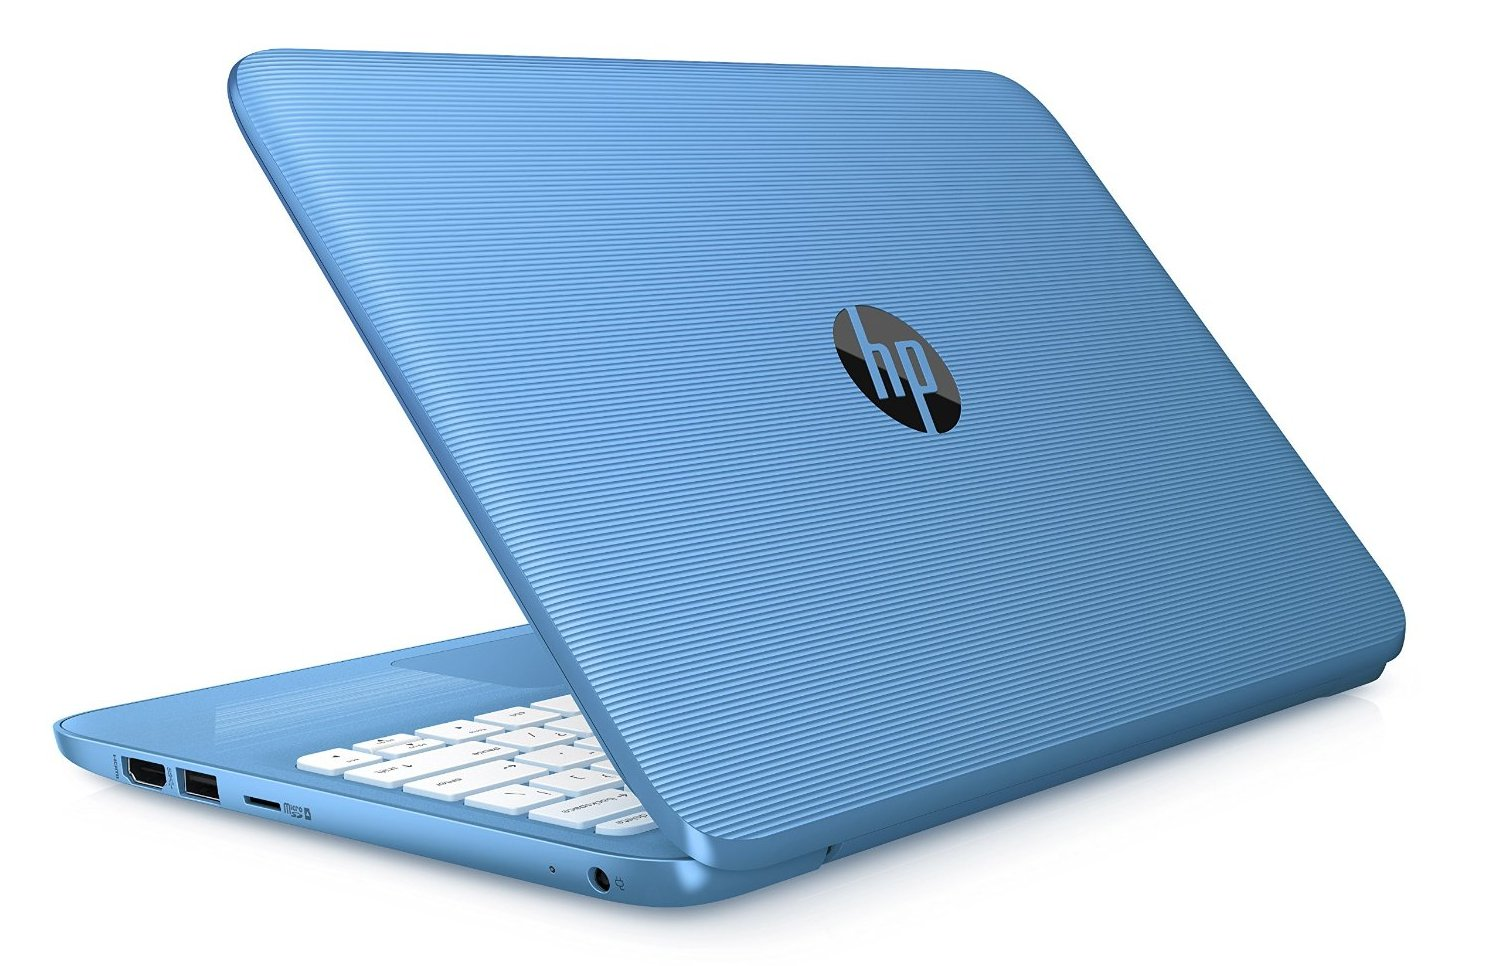 Which of these laptops is best for me? (see info and links)?